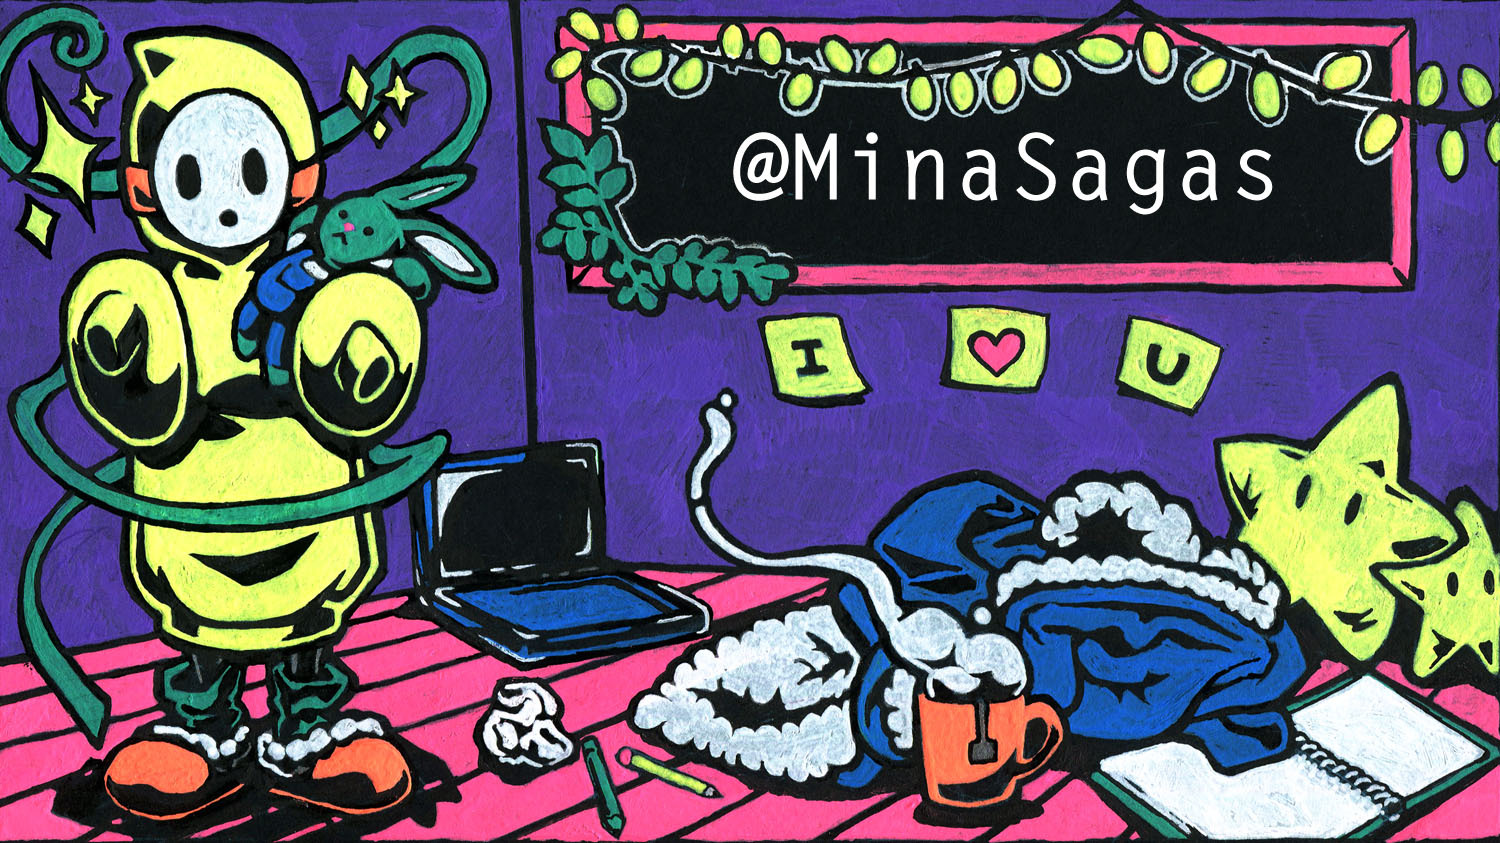 MinaSagas' banner (9 in x 5 in)